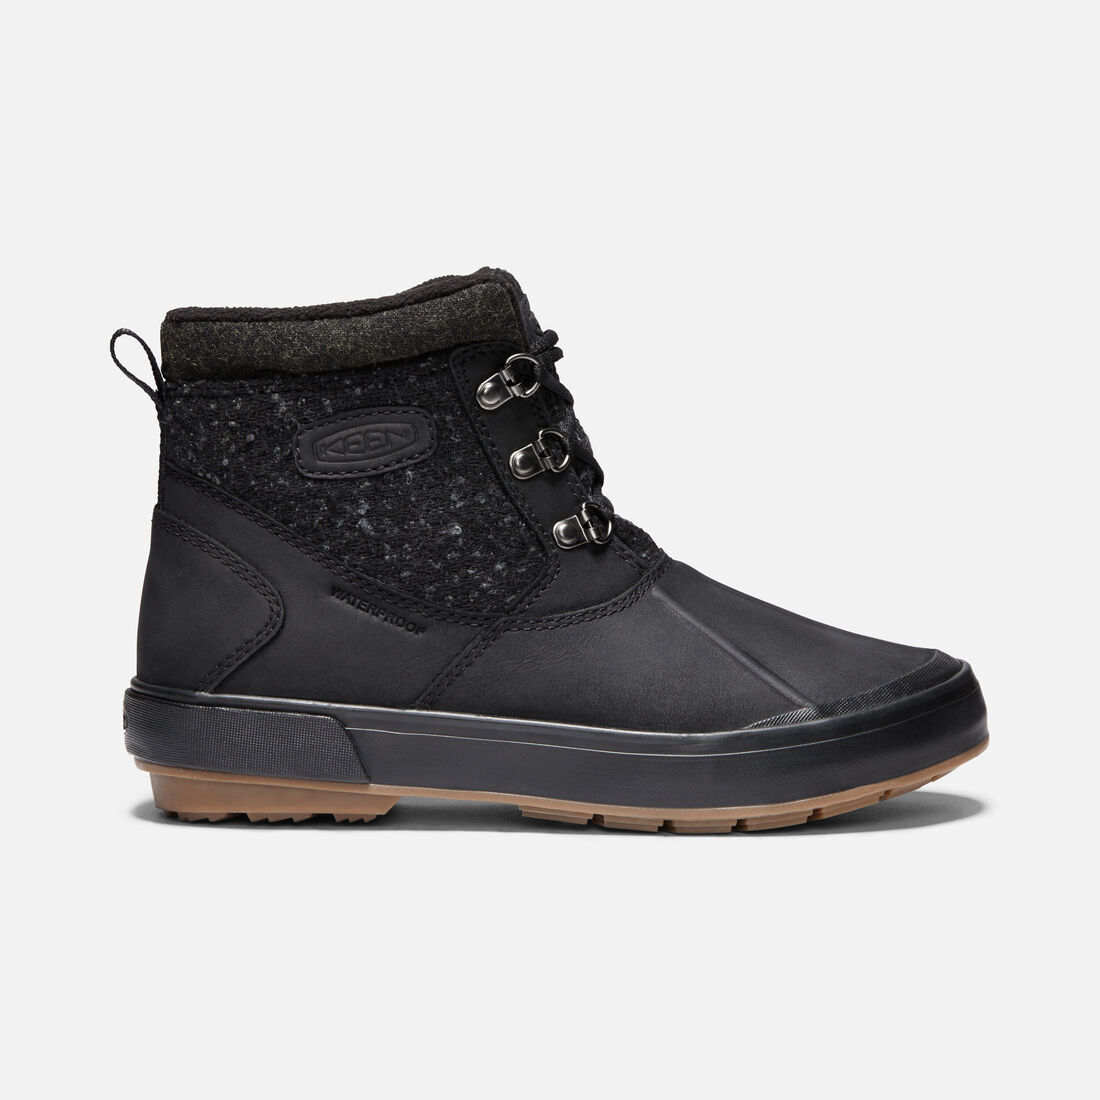 7a129376022 Women's Elsa II - Waterproof Wool Ankle Boots | KEEN Footwear